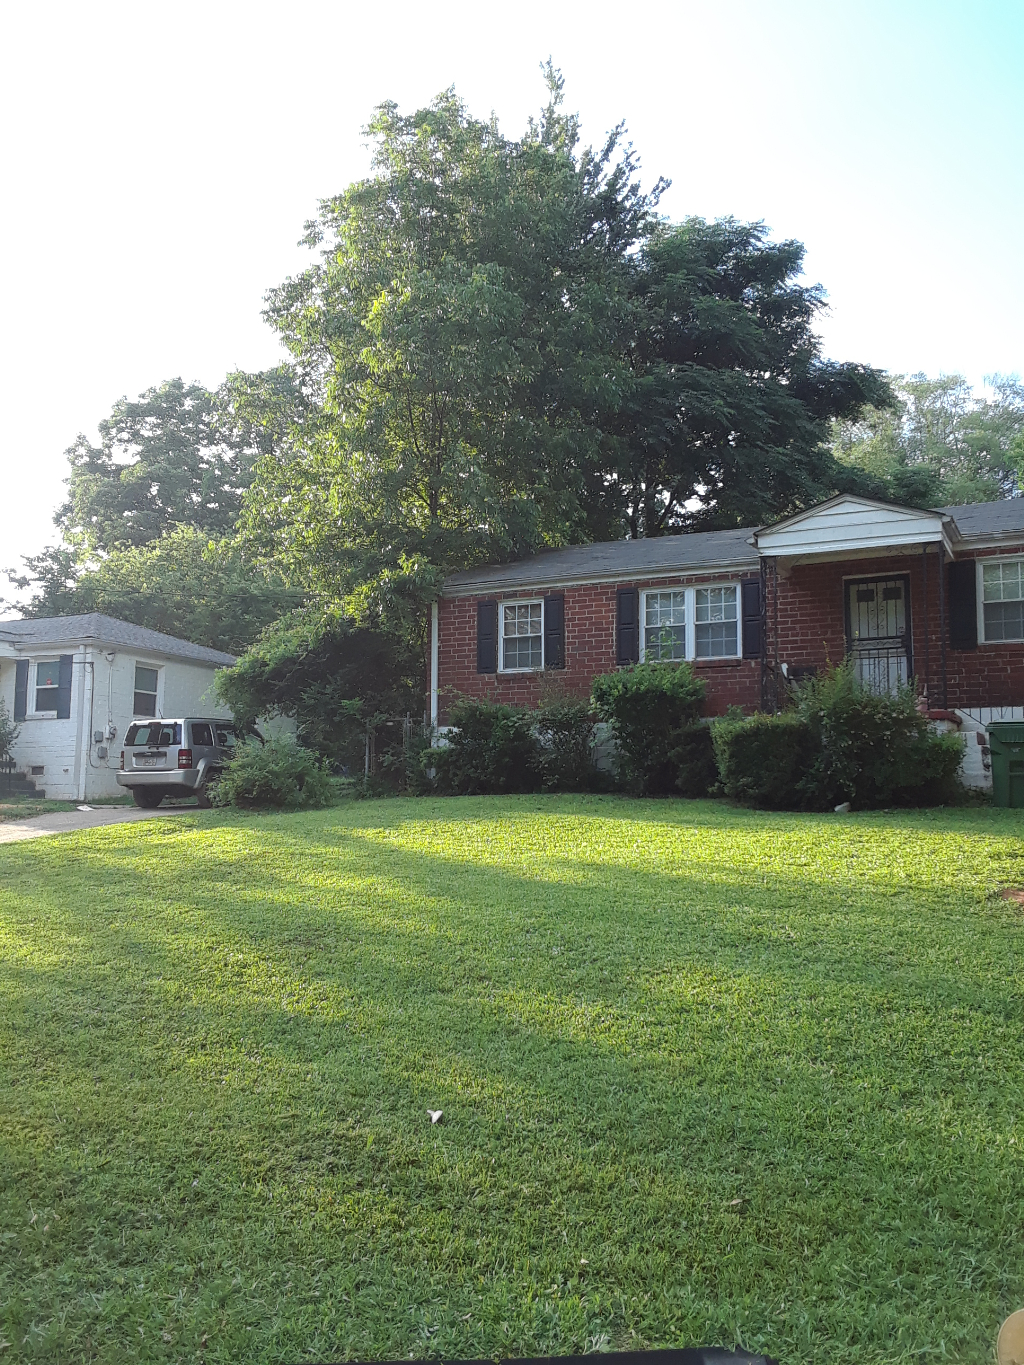 Yard mowing company in Decatur, GA, 30032